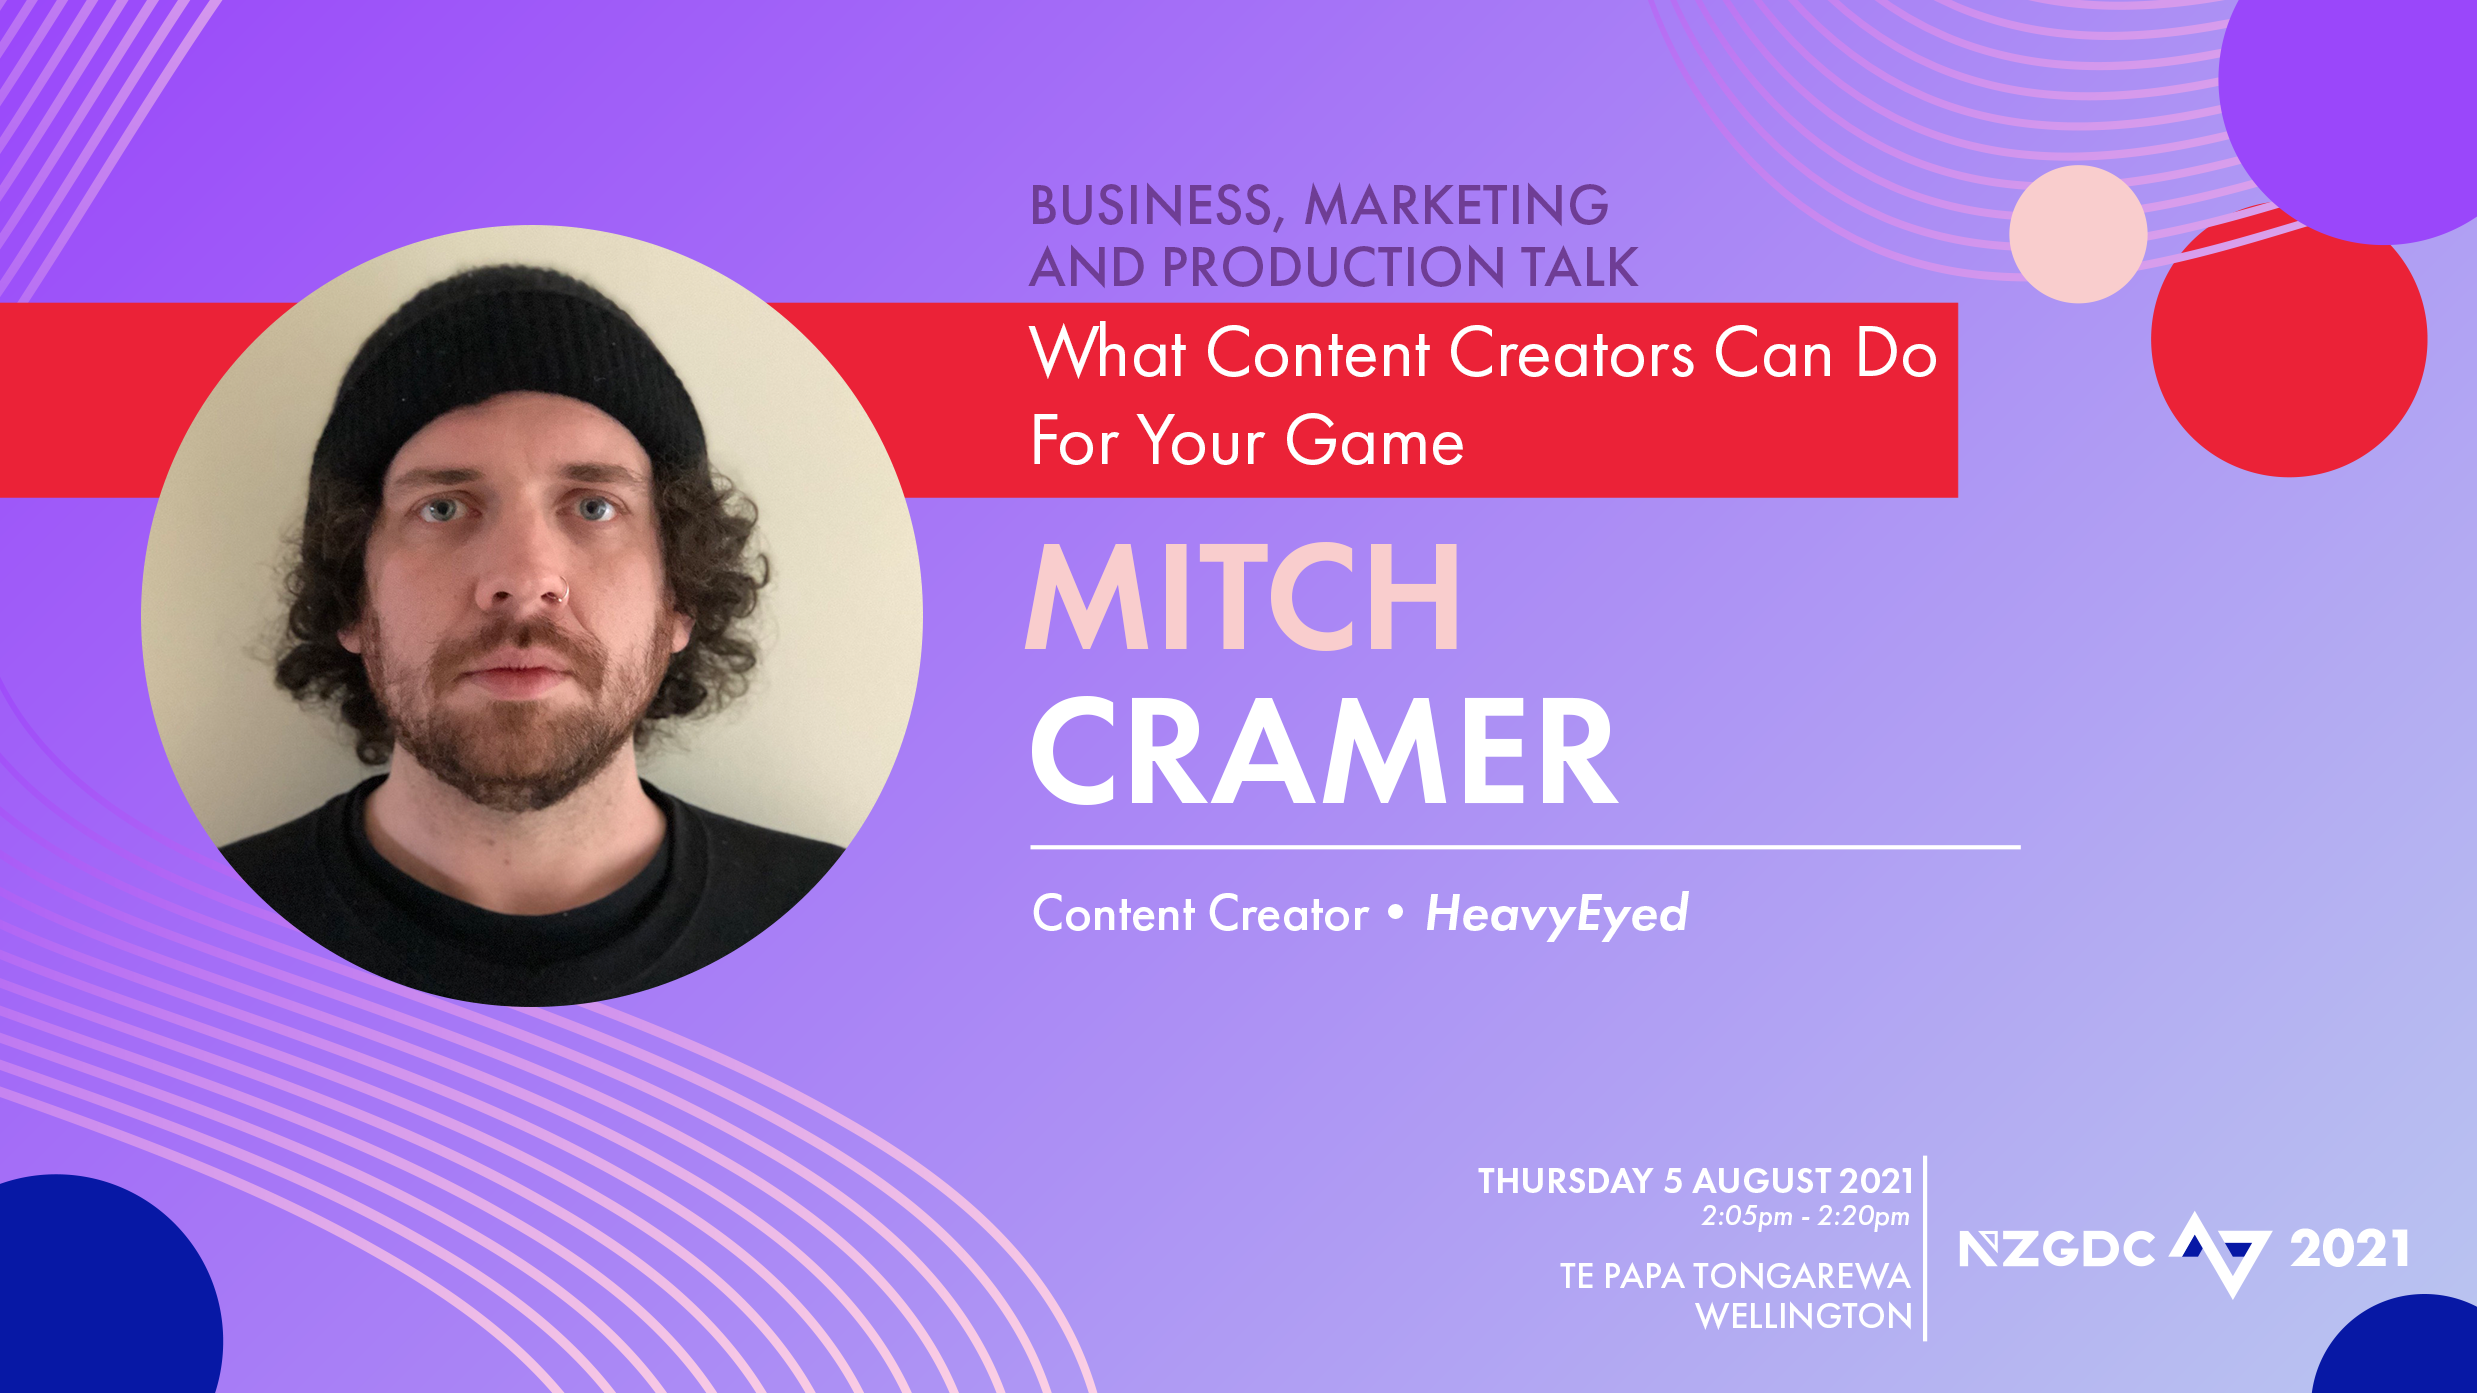 What Content Creators Can Do For Your Game